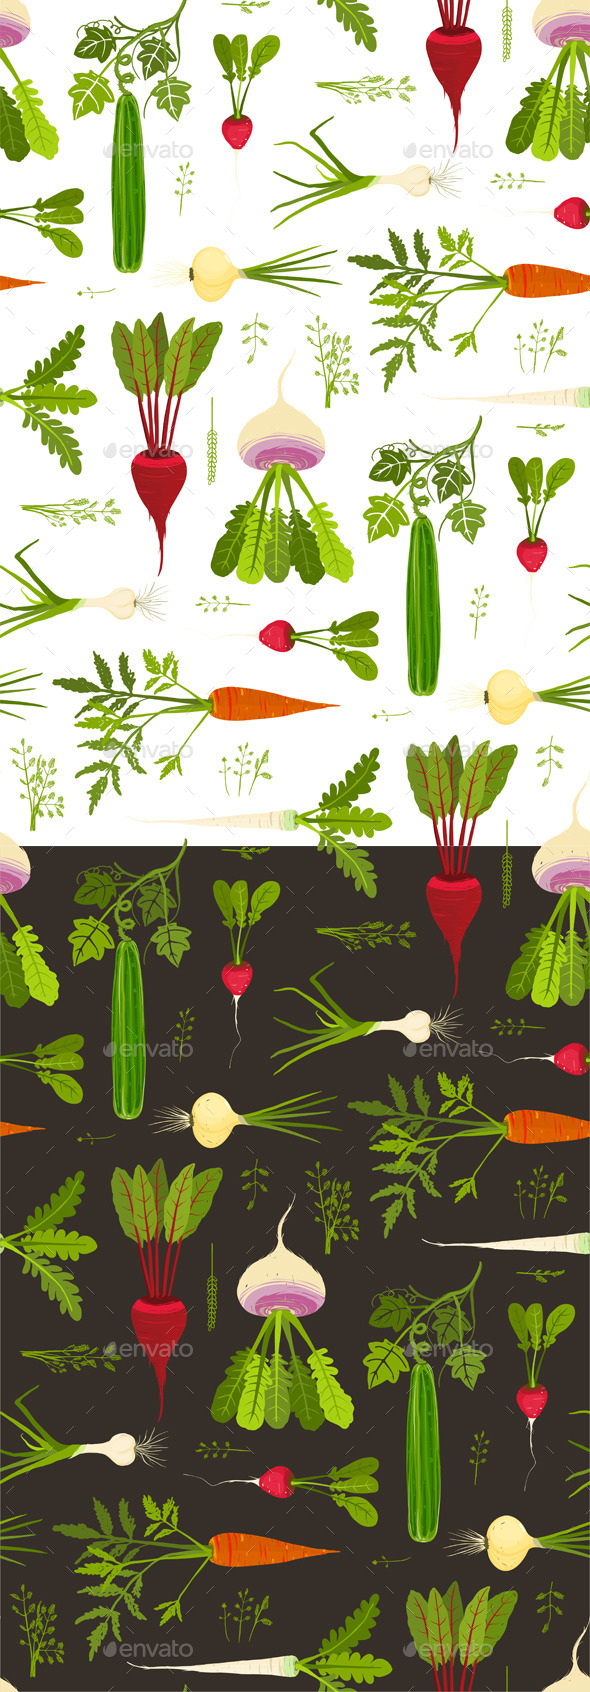 GraphicRiver Vegetables and Greens Seamless Pattern Background 9352991